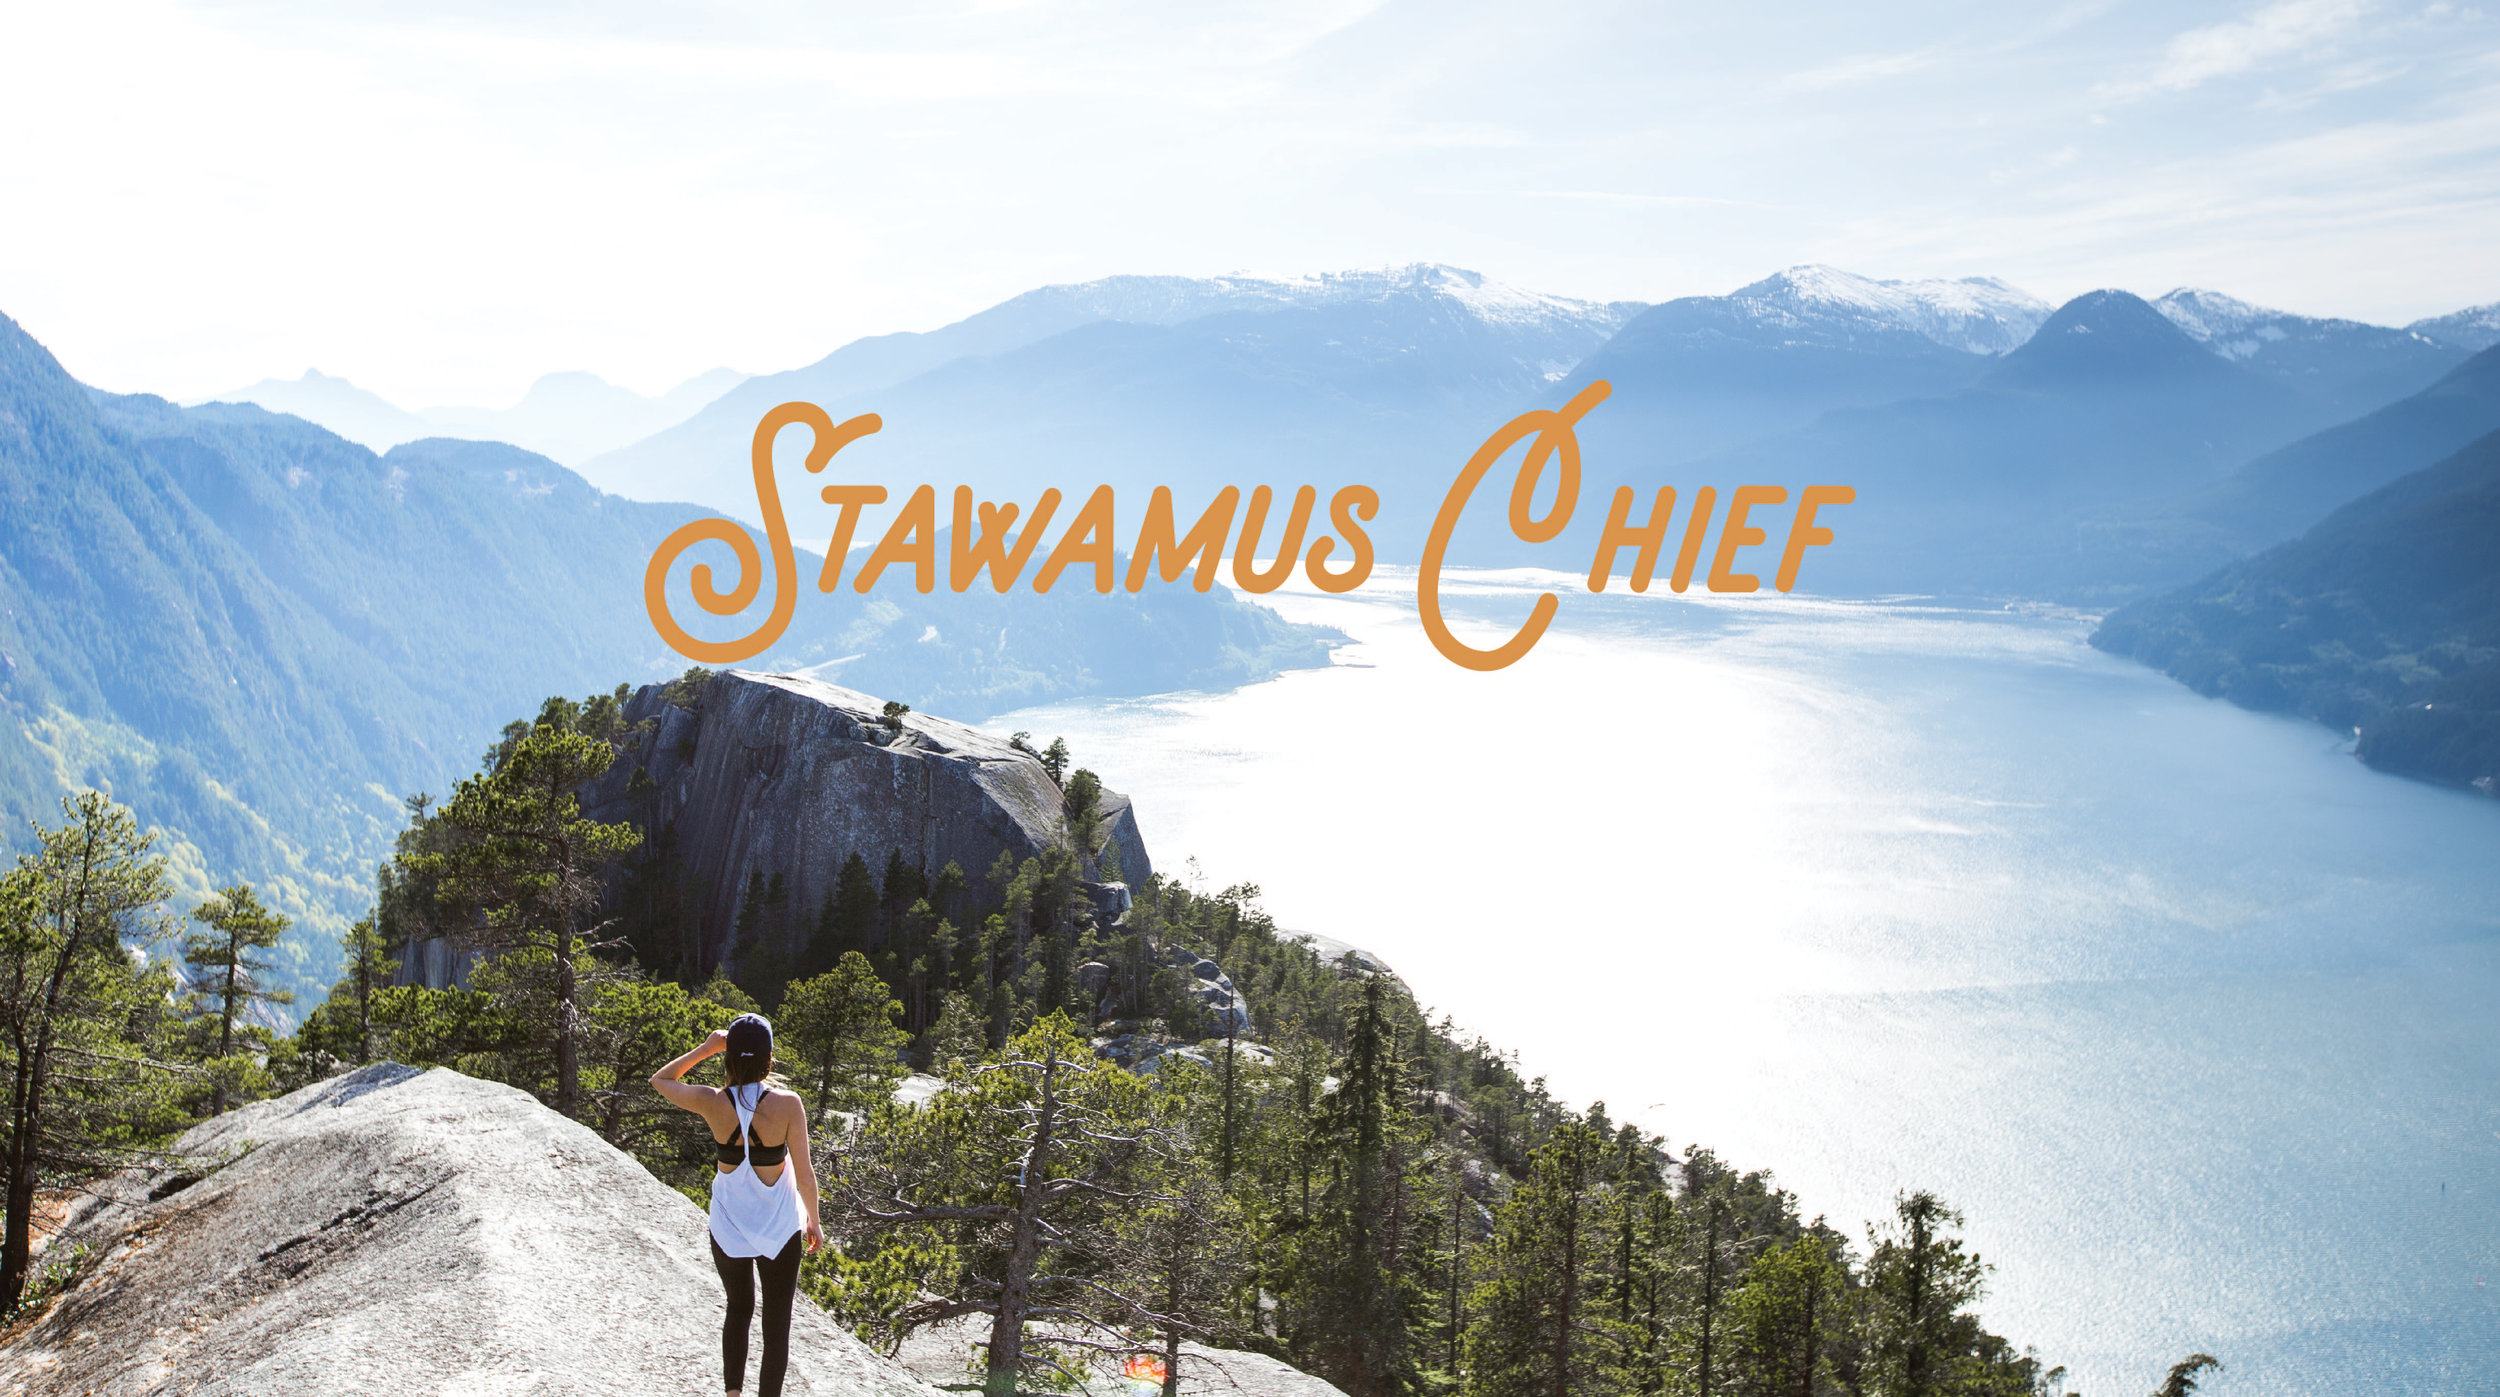 Stawamus Chief (The Chief) - VancityWild